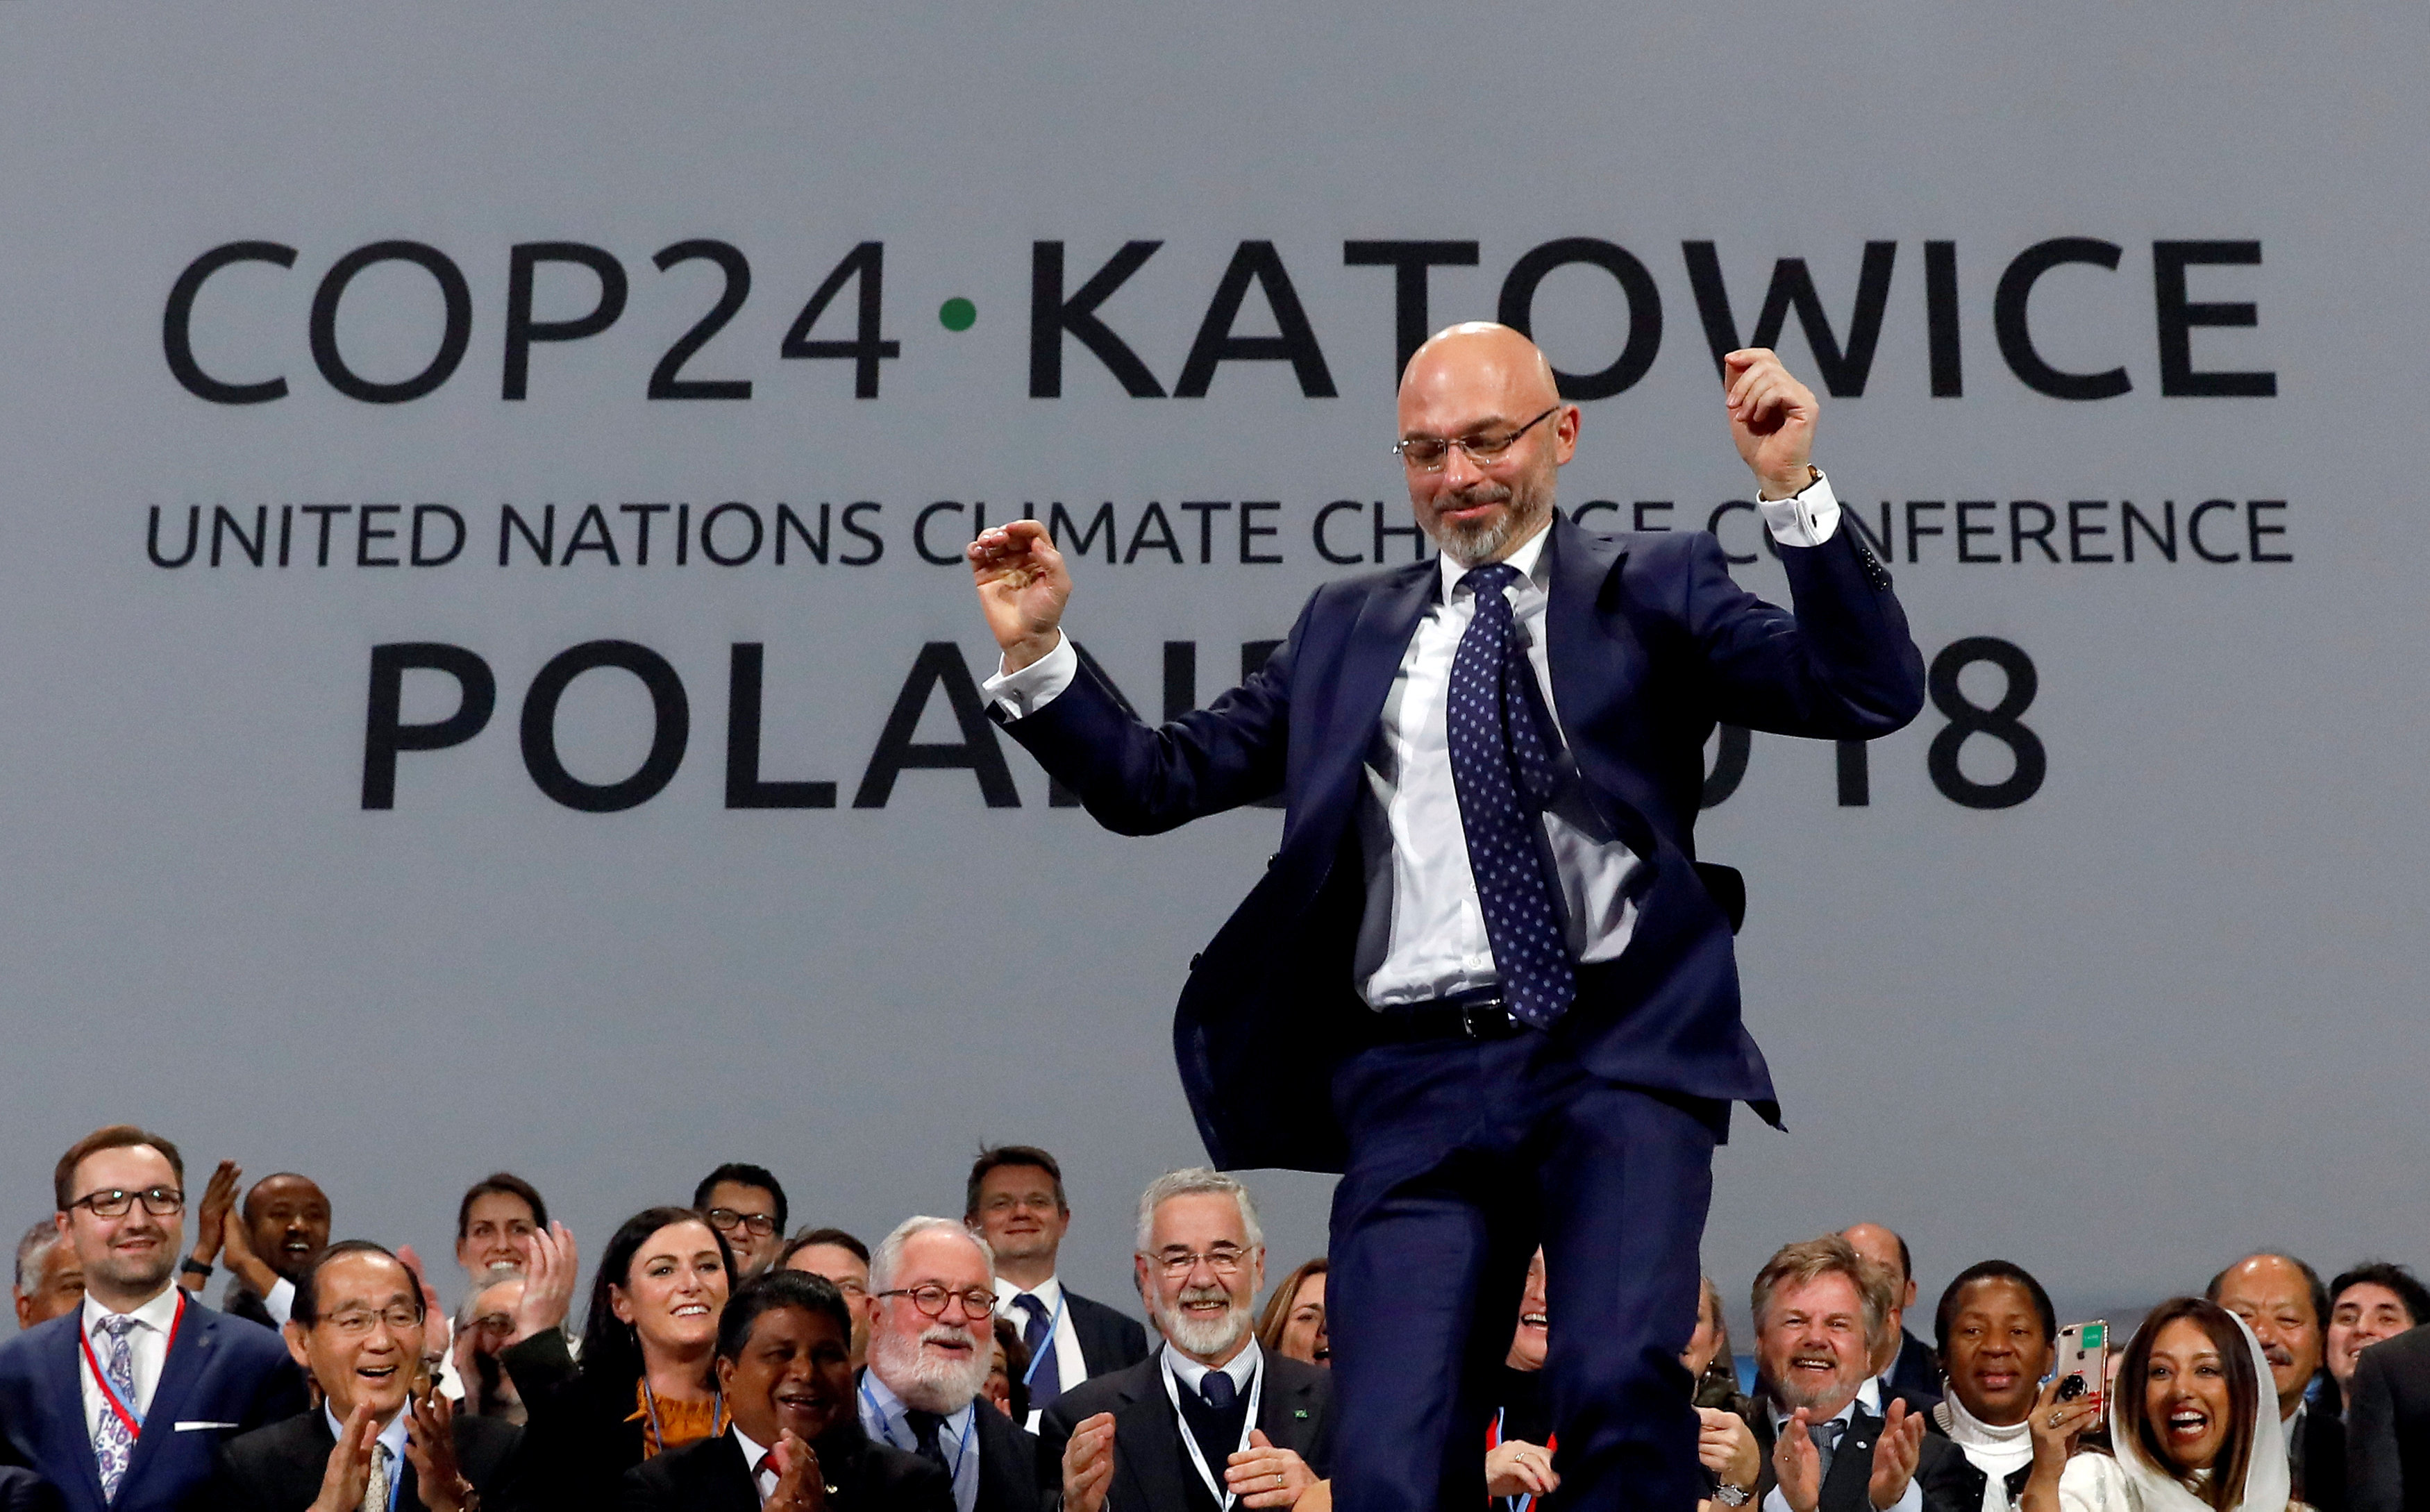 President of the talks Michal Kurtyka celebrates during the final session. Photo: Reuters